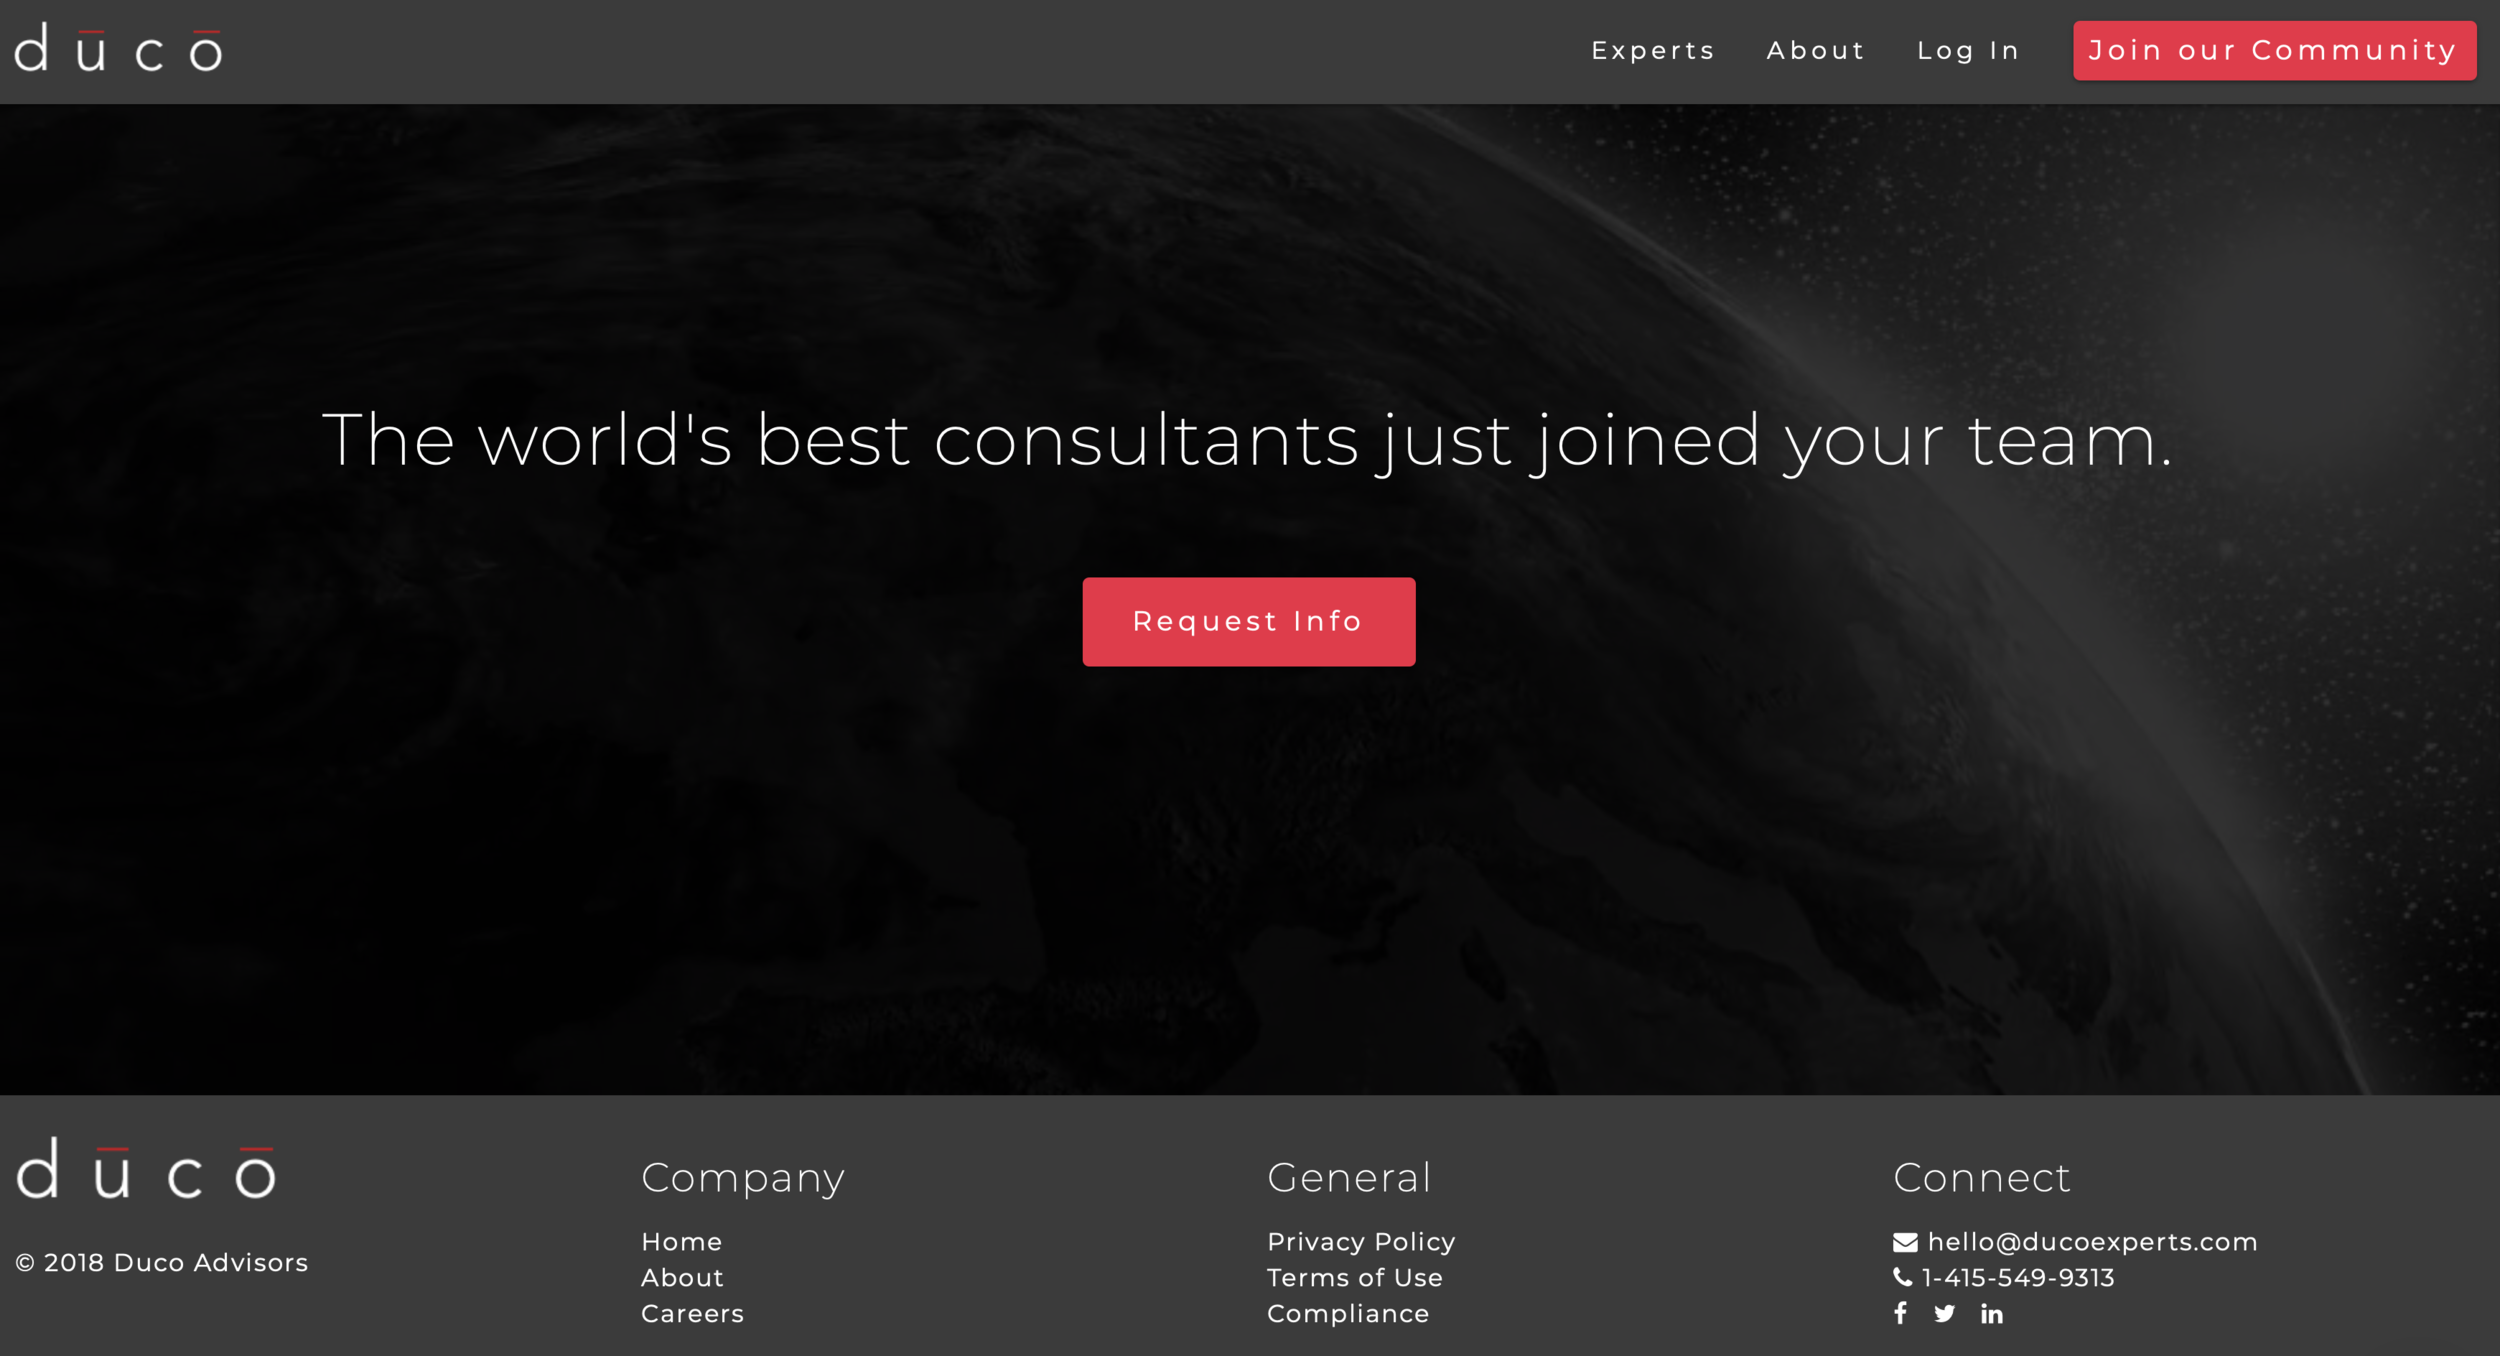 DUCO - Description: Duco is an online gig economy platform that directly connects businesses with high-end consultants. Need to talk to a former high-level U.S. Treasury official about trade policy when assessing a new international investment prospect? No problem. Need a blockchain specialist to explain how the spread of that technology could impact your company? It's a few clicks away. Pick any arena of elite, high-value knowledge and you can find an expert on Duco in minutes at a fraction of the cost of massive global consulting services.Regulatory Challenge: The flow of high-end information is intensely regulated. Subversive will guide Duco as it grows.